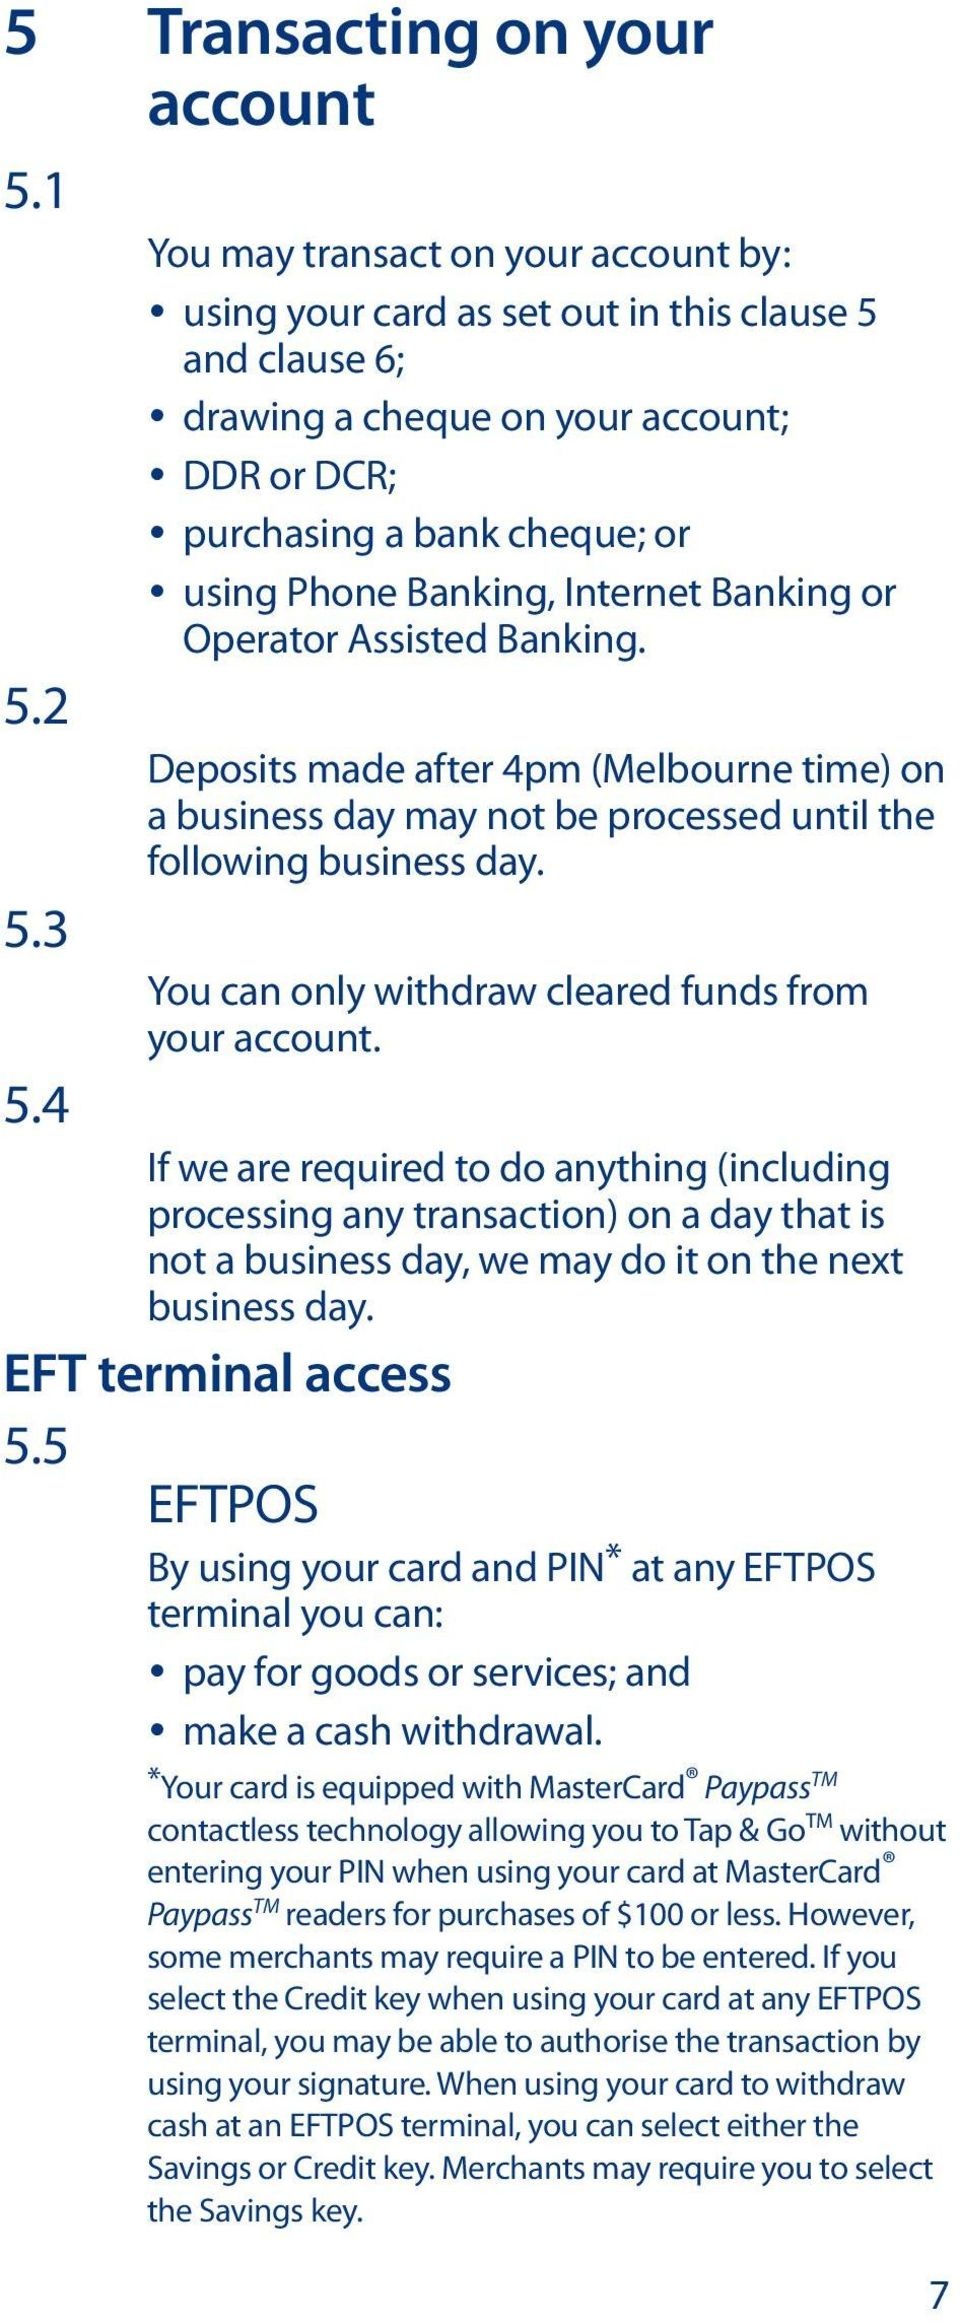 Banking, Internet Banking or Operator Assisted Banking. Deposits made after 4pm (Melbourne time) on a business day may not be processed until the following business day.